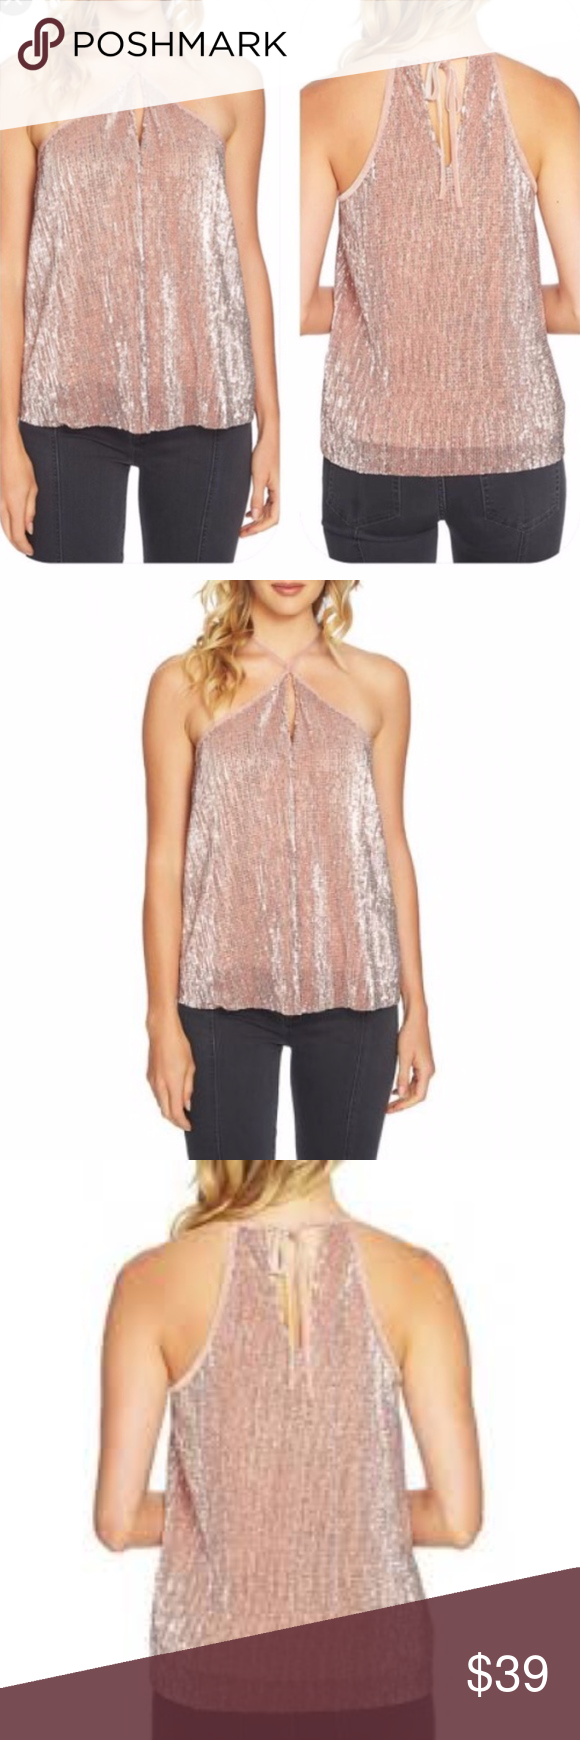 d9737dcb5f7e88 🆕 1. STATE Sequin Cami Tank